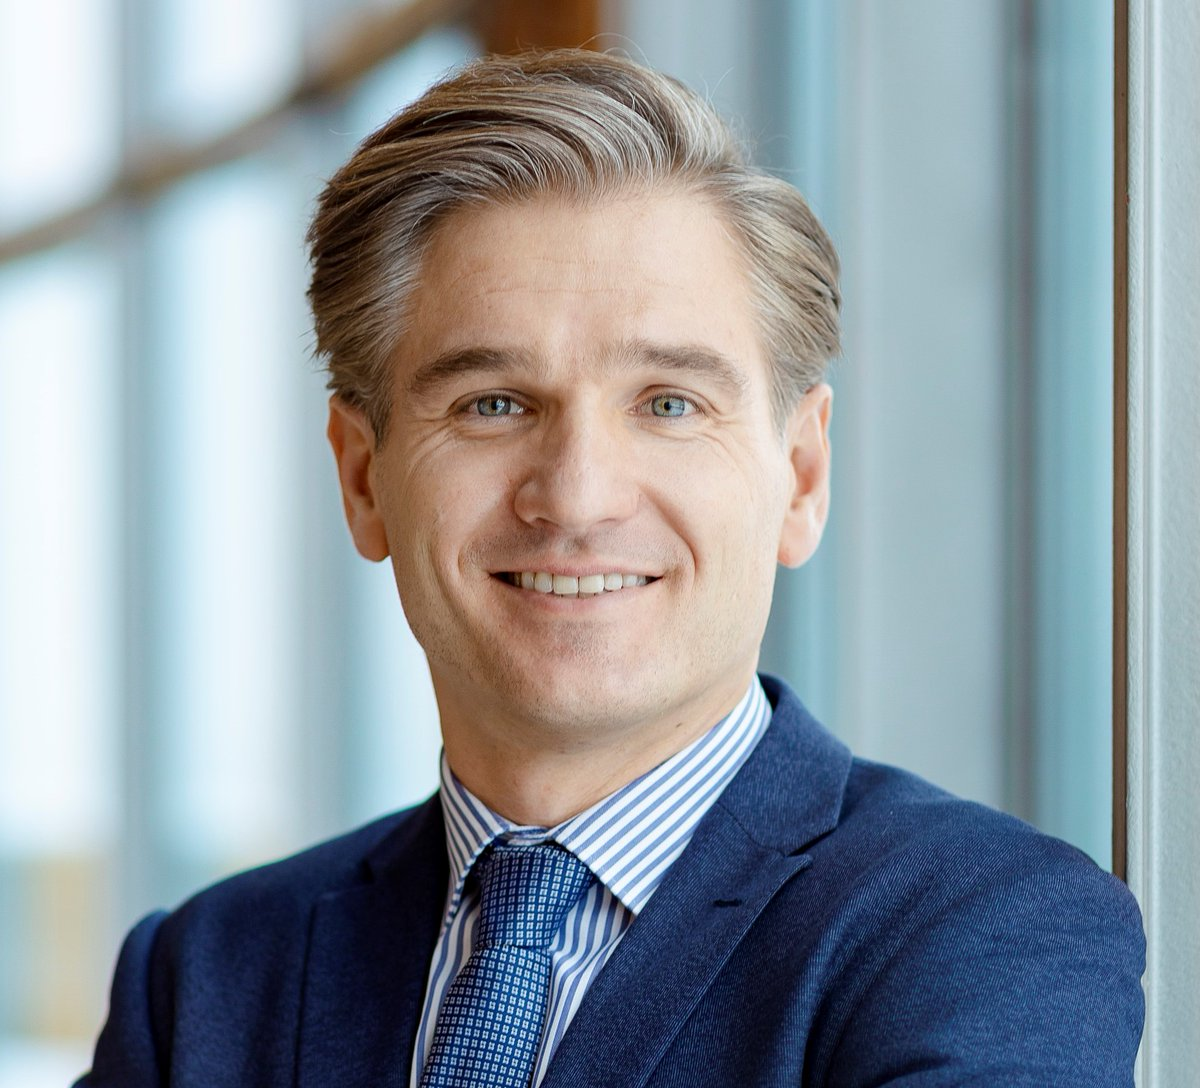 +++ MEET THE SPEAKERS OF THE RESPONSIBLE AI FORUM 2020 +++ ➡️ Today: Dr. Christian Guttmann @ChrisXtg was recently named TOP 100 global AI leader in Artificial Intelligence, Machine Learning and Data Science.  @nordicinst #TRAIF2020 #ArtificialIntelligence #ethics #Welcome https://t.co/0xDpIMfUDT